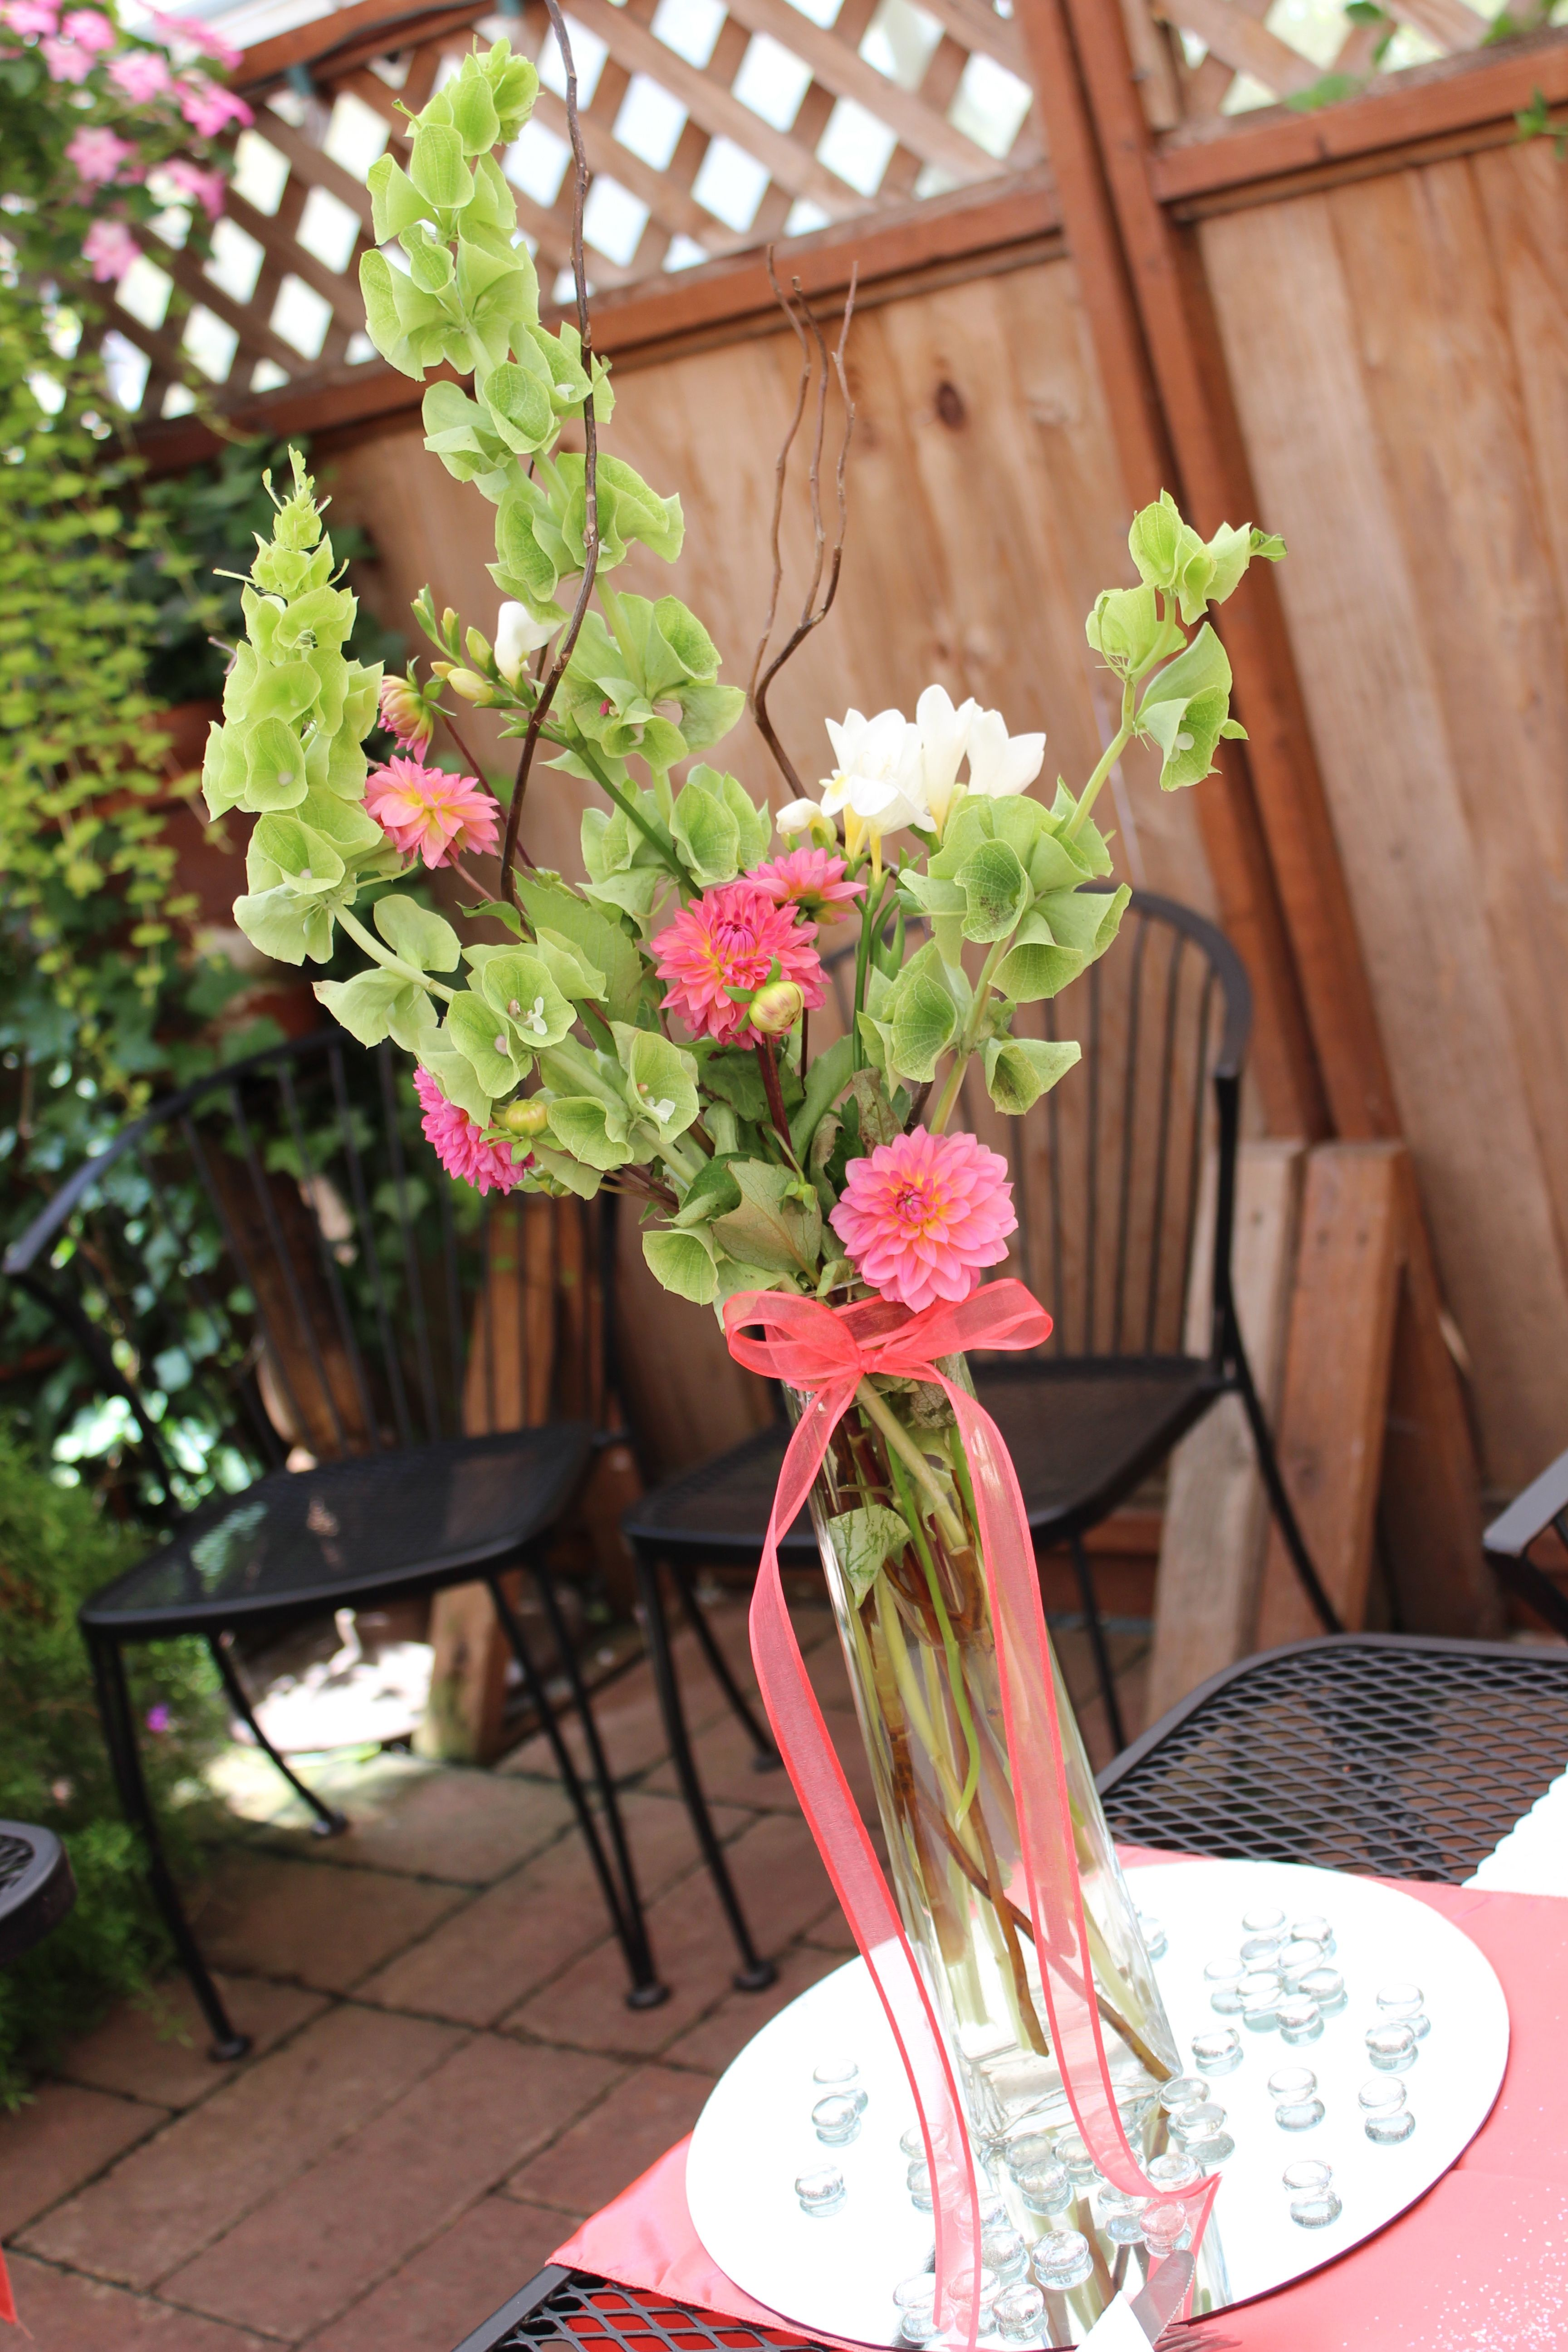 Mini dahlia flower arrangements i had made my decorations mini dahlia flower arrangements i had made izmirmasajfo